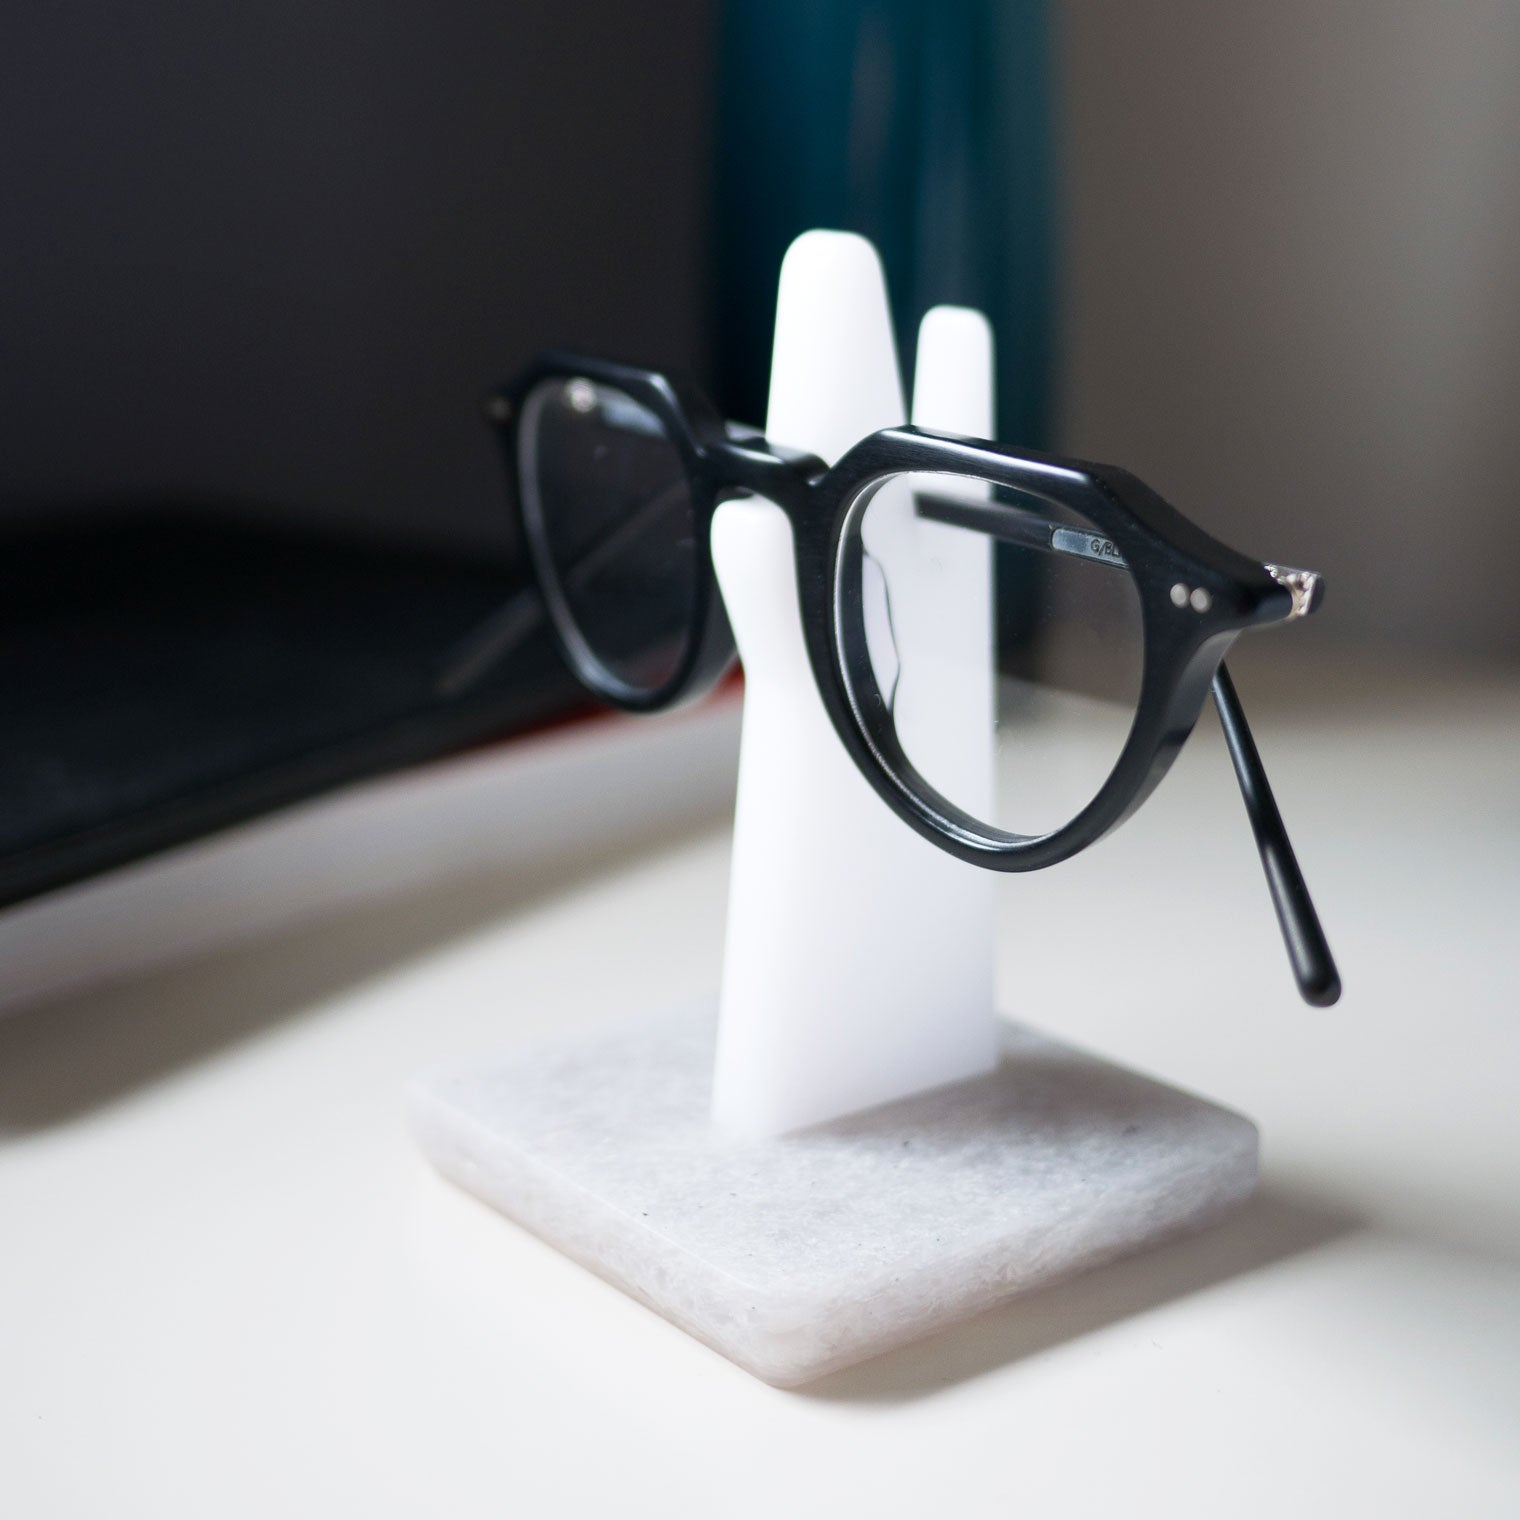 Black oval glasses resting on spectacle holder